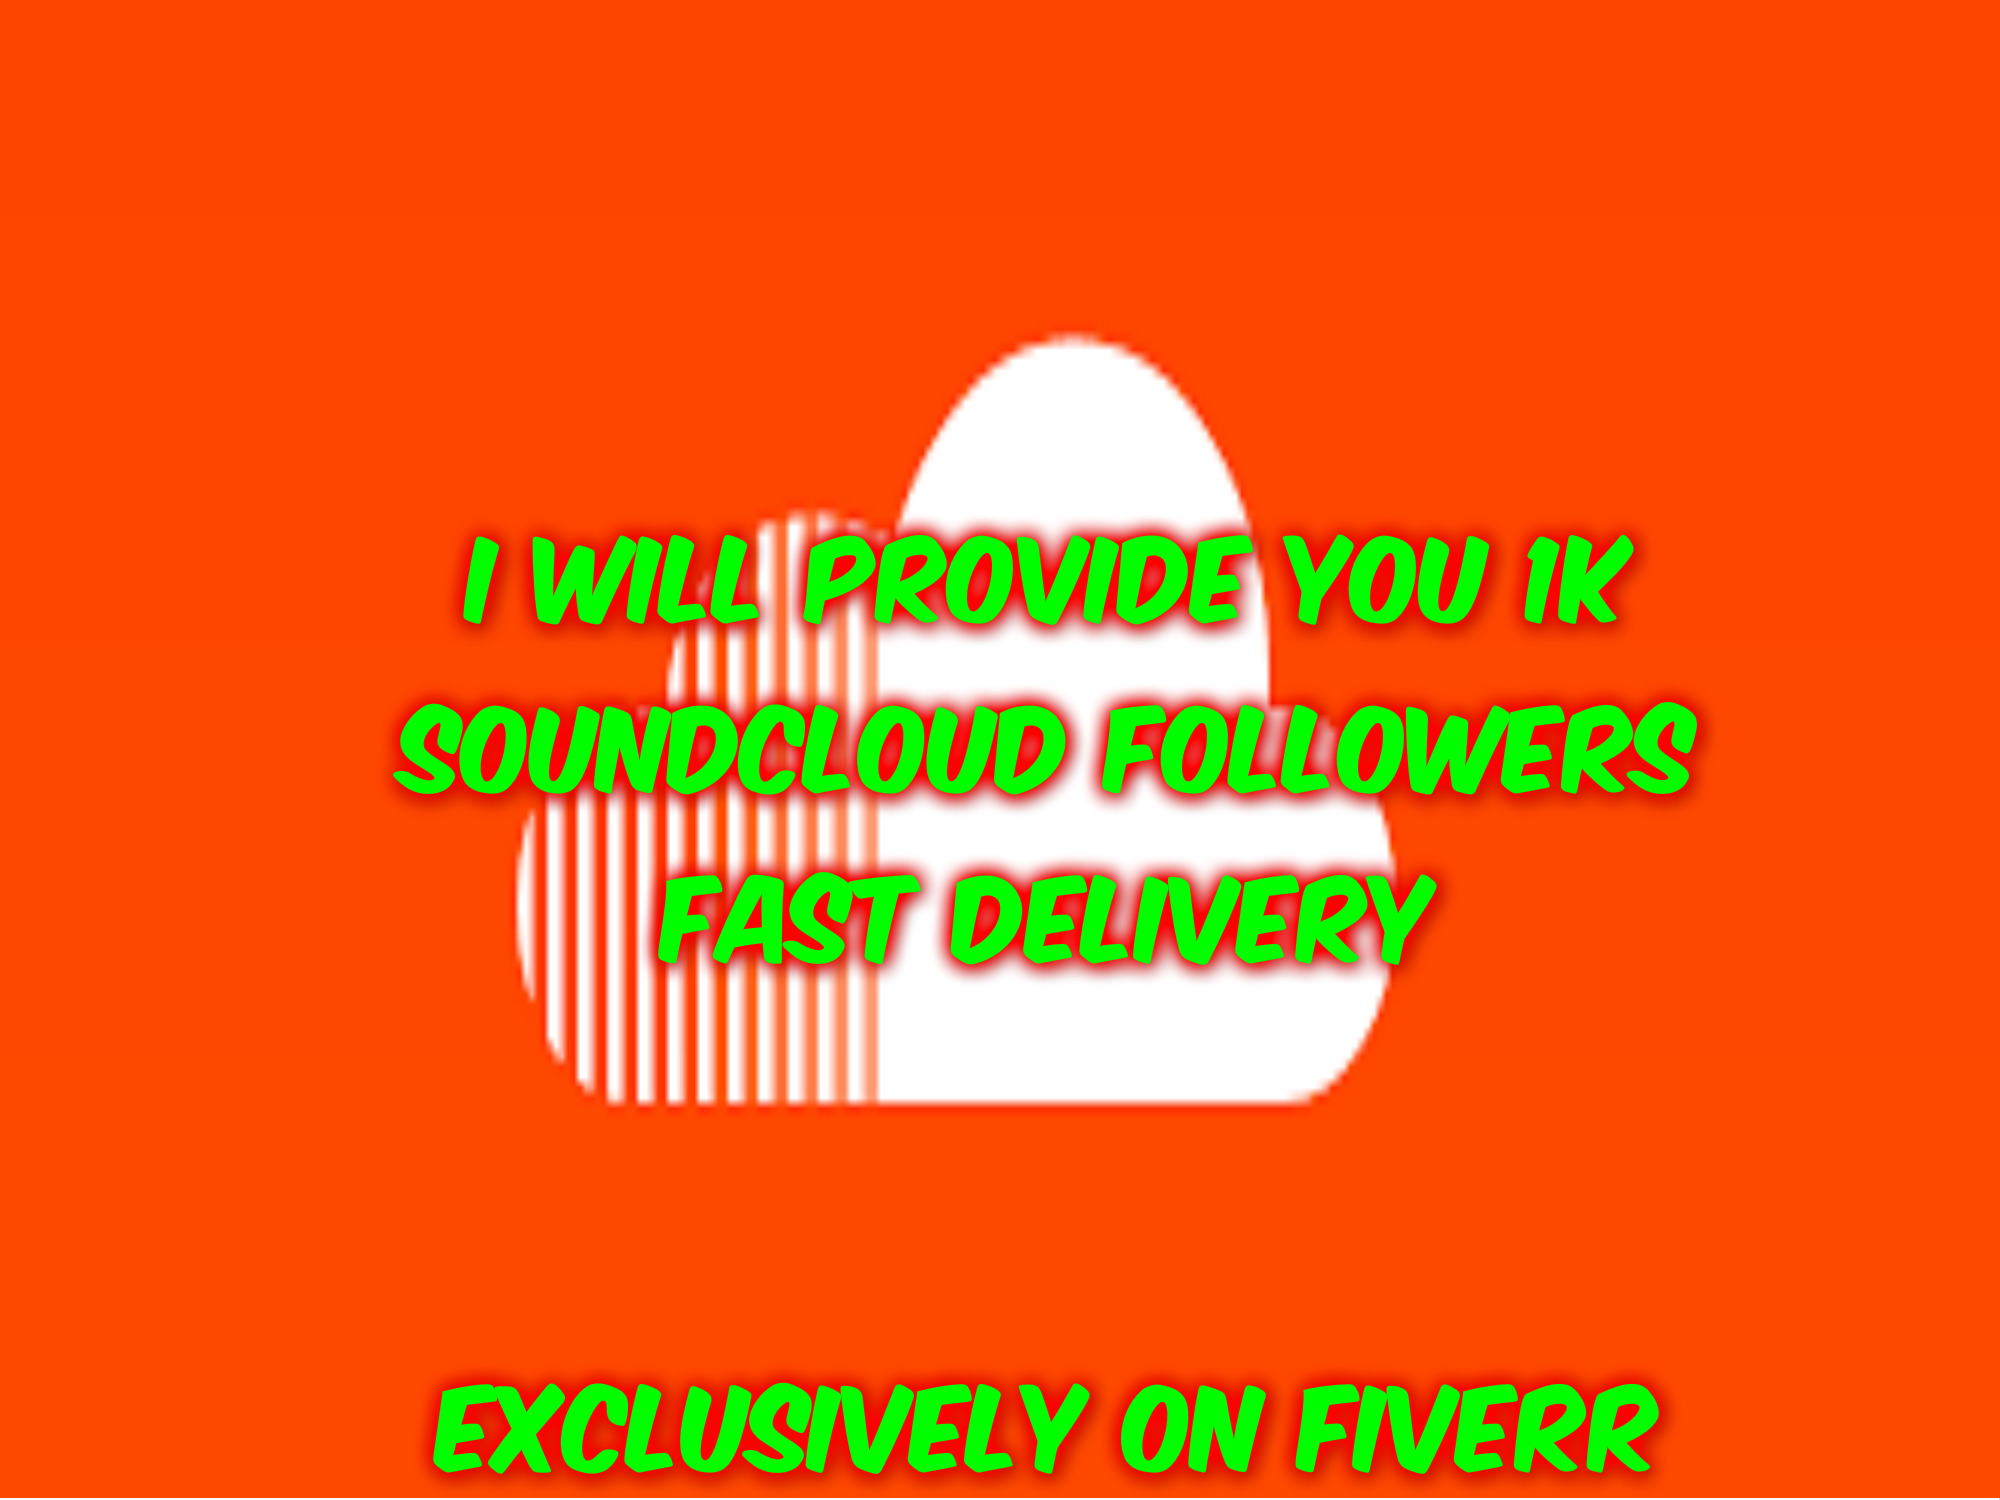 i will provide you 350 soundcloud followers